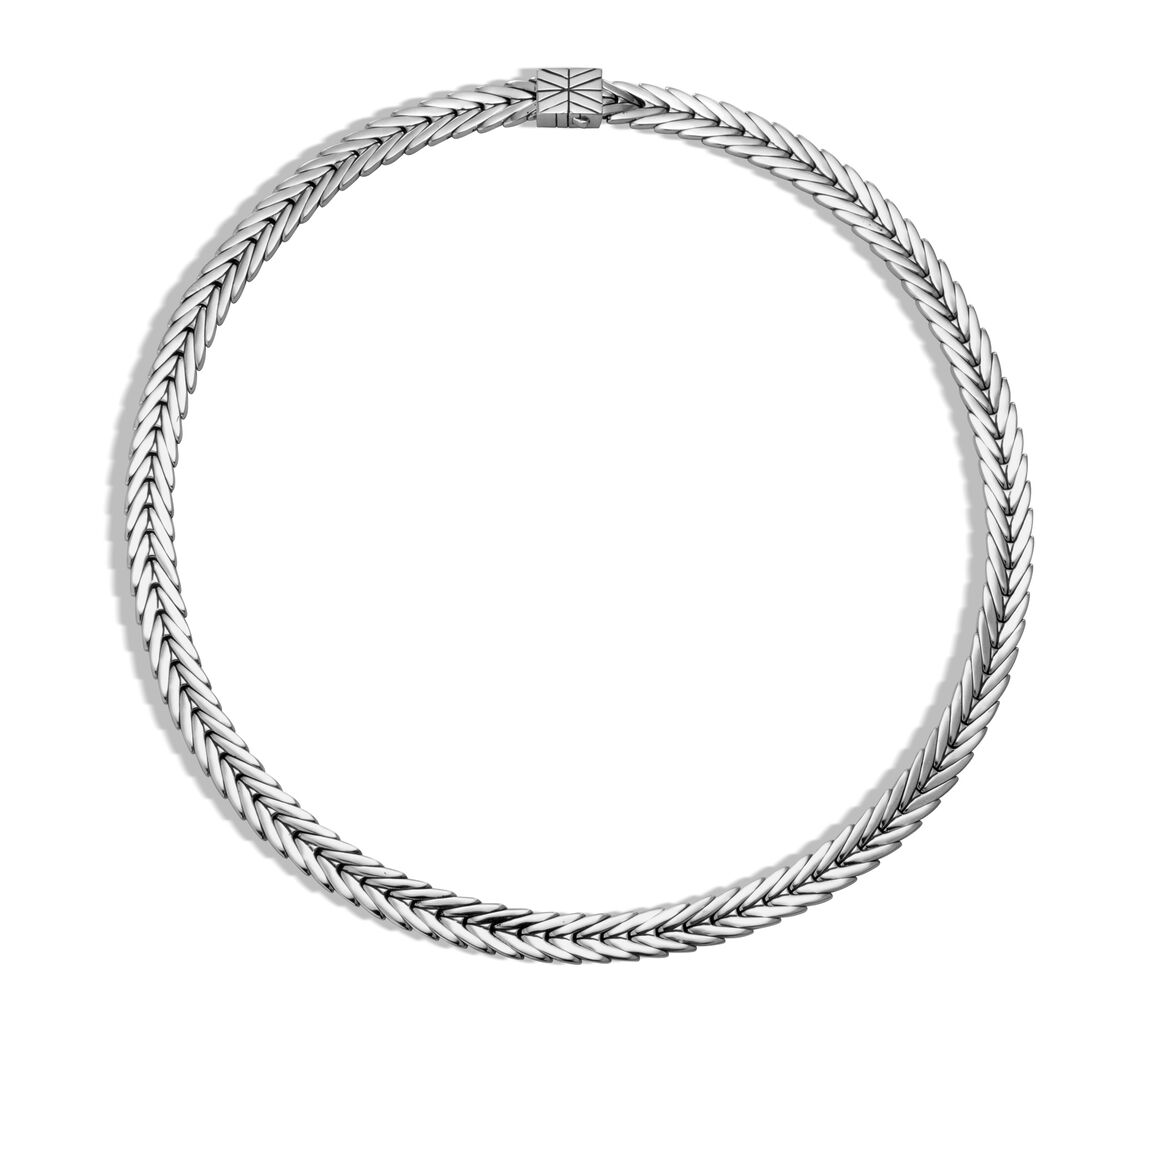 Modern Chain 8MM Necklace in Silver